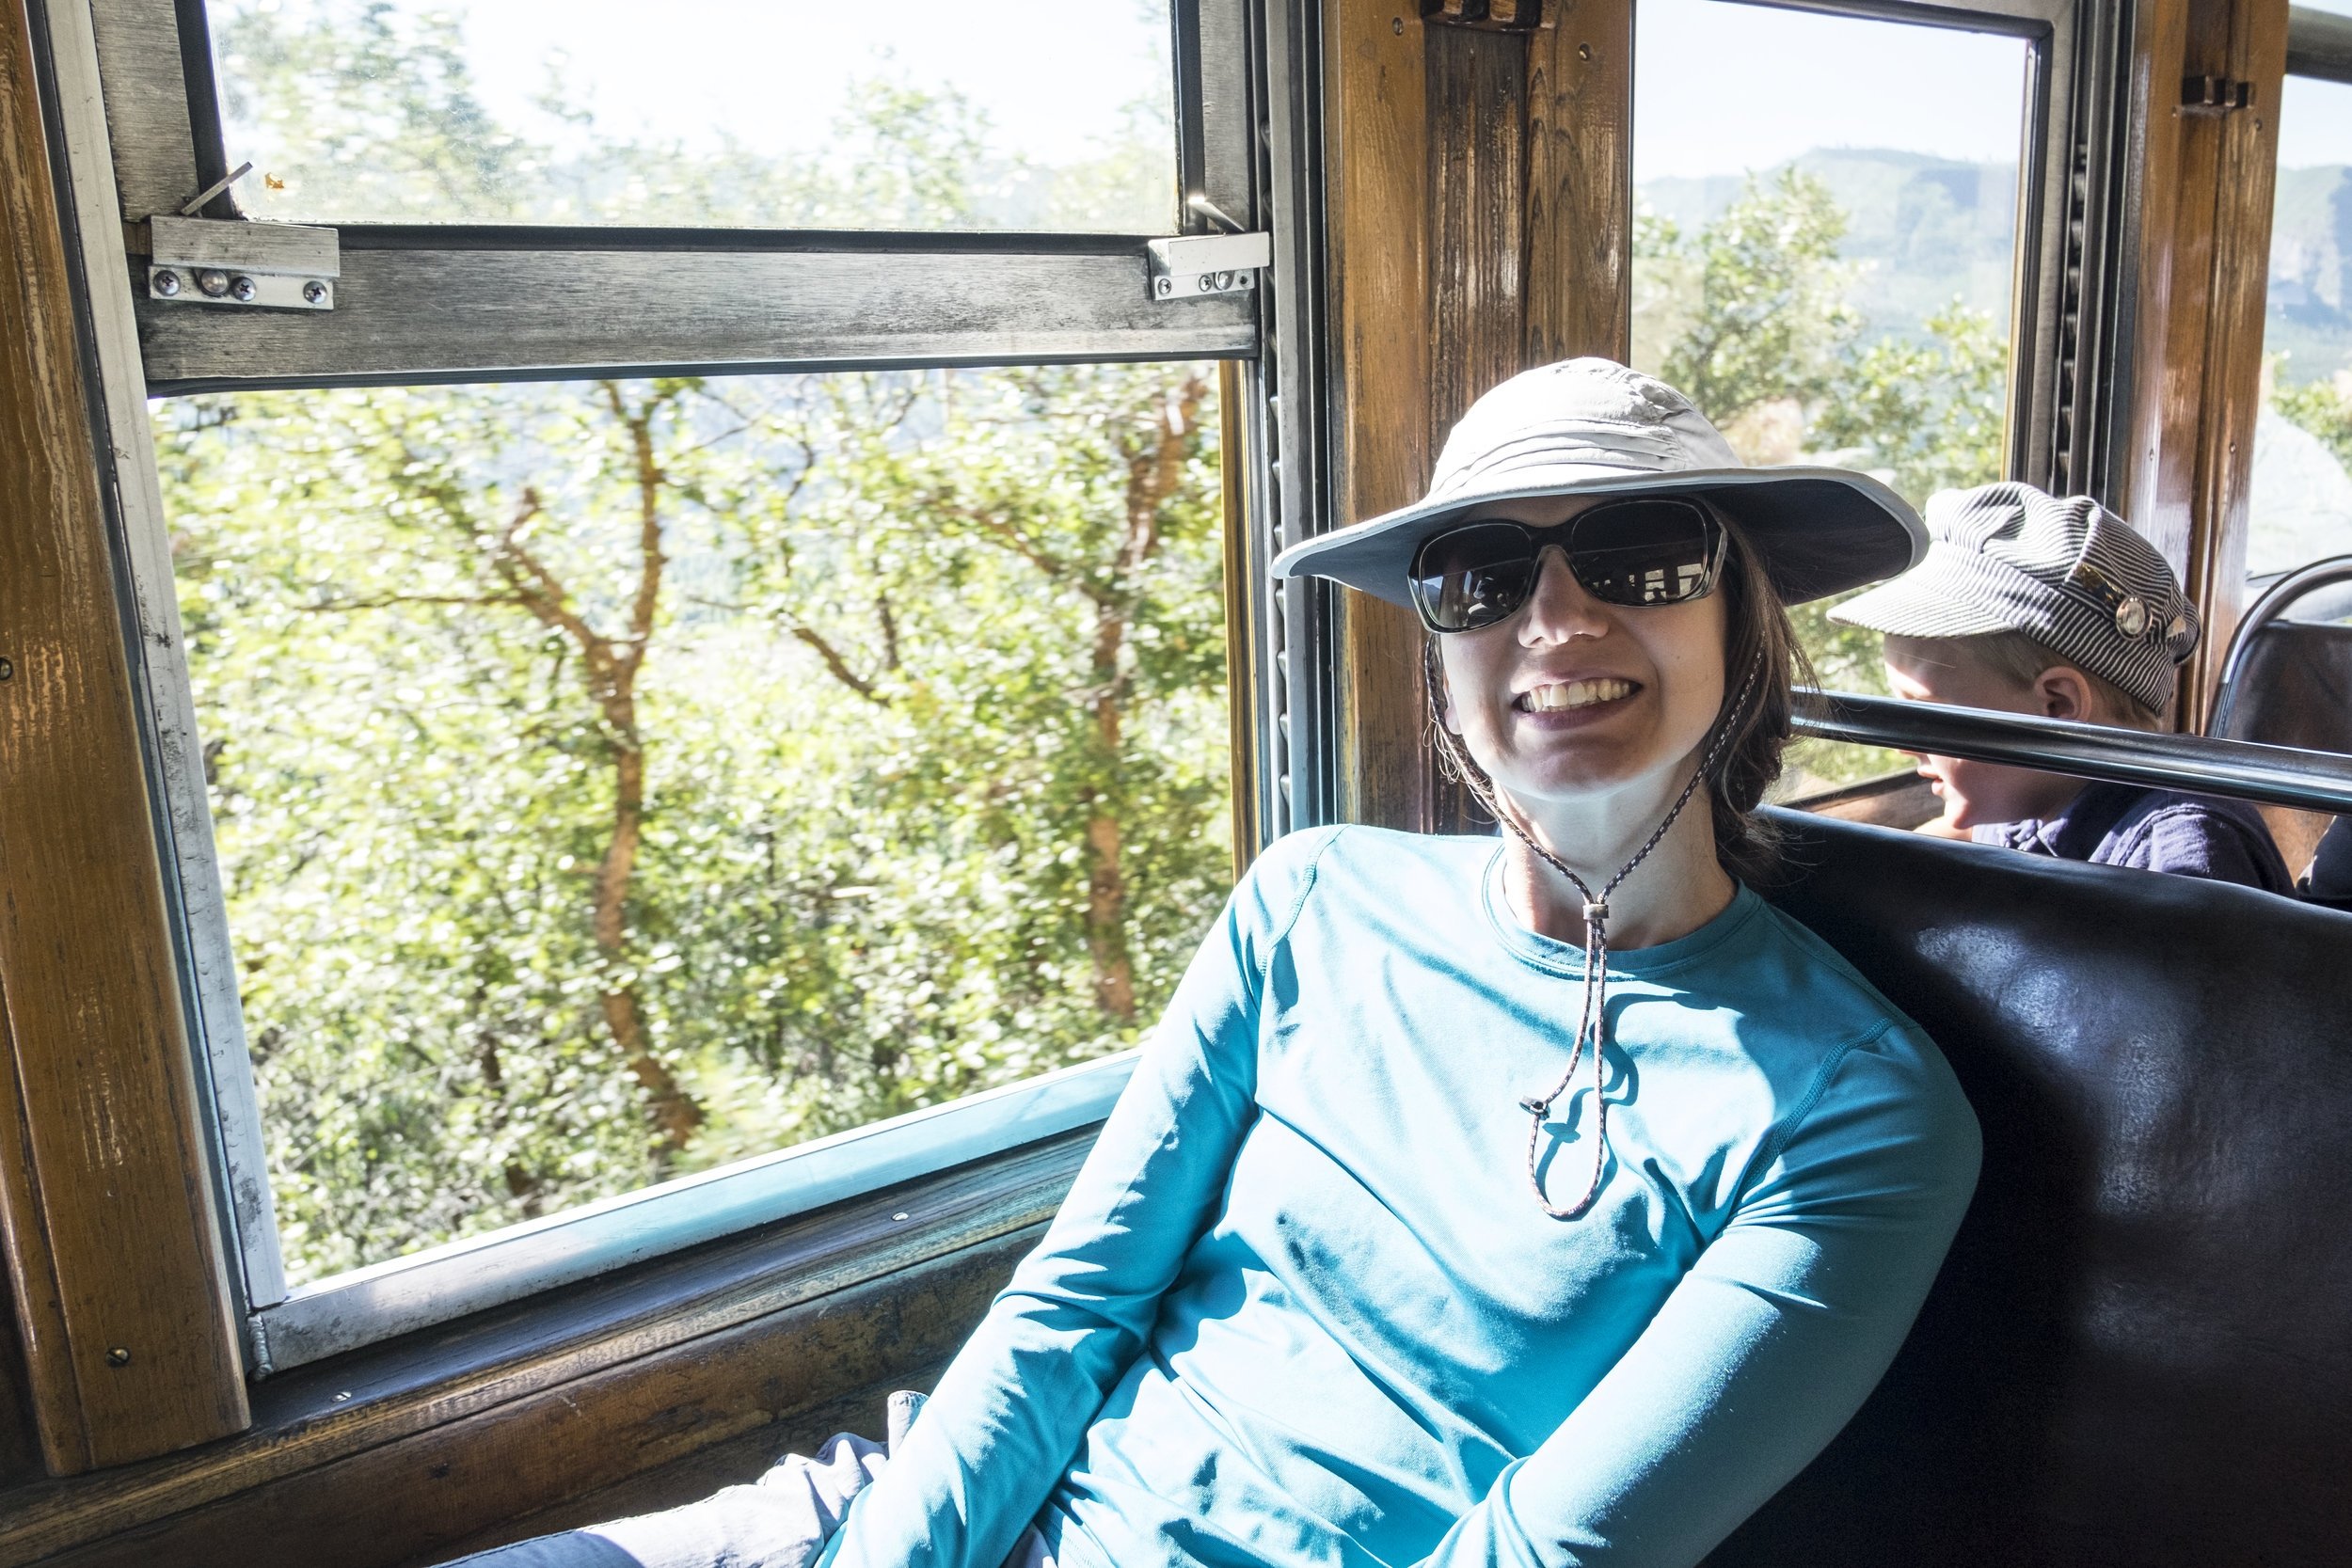 Gabs enjoys the view of the Animas River from the train car.